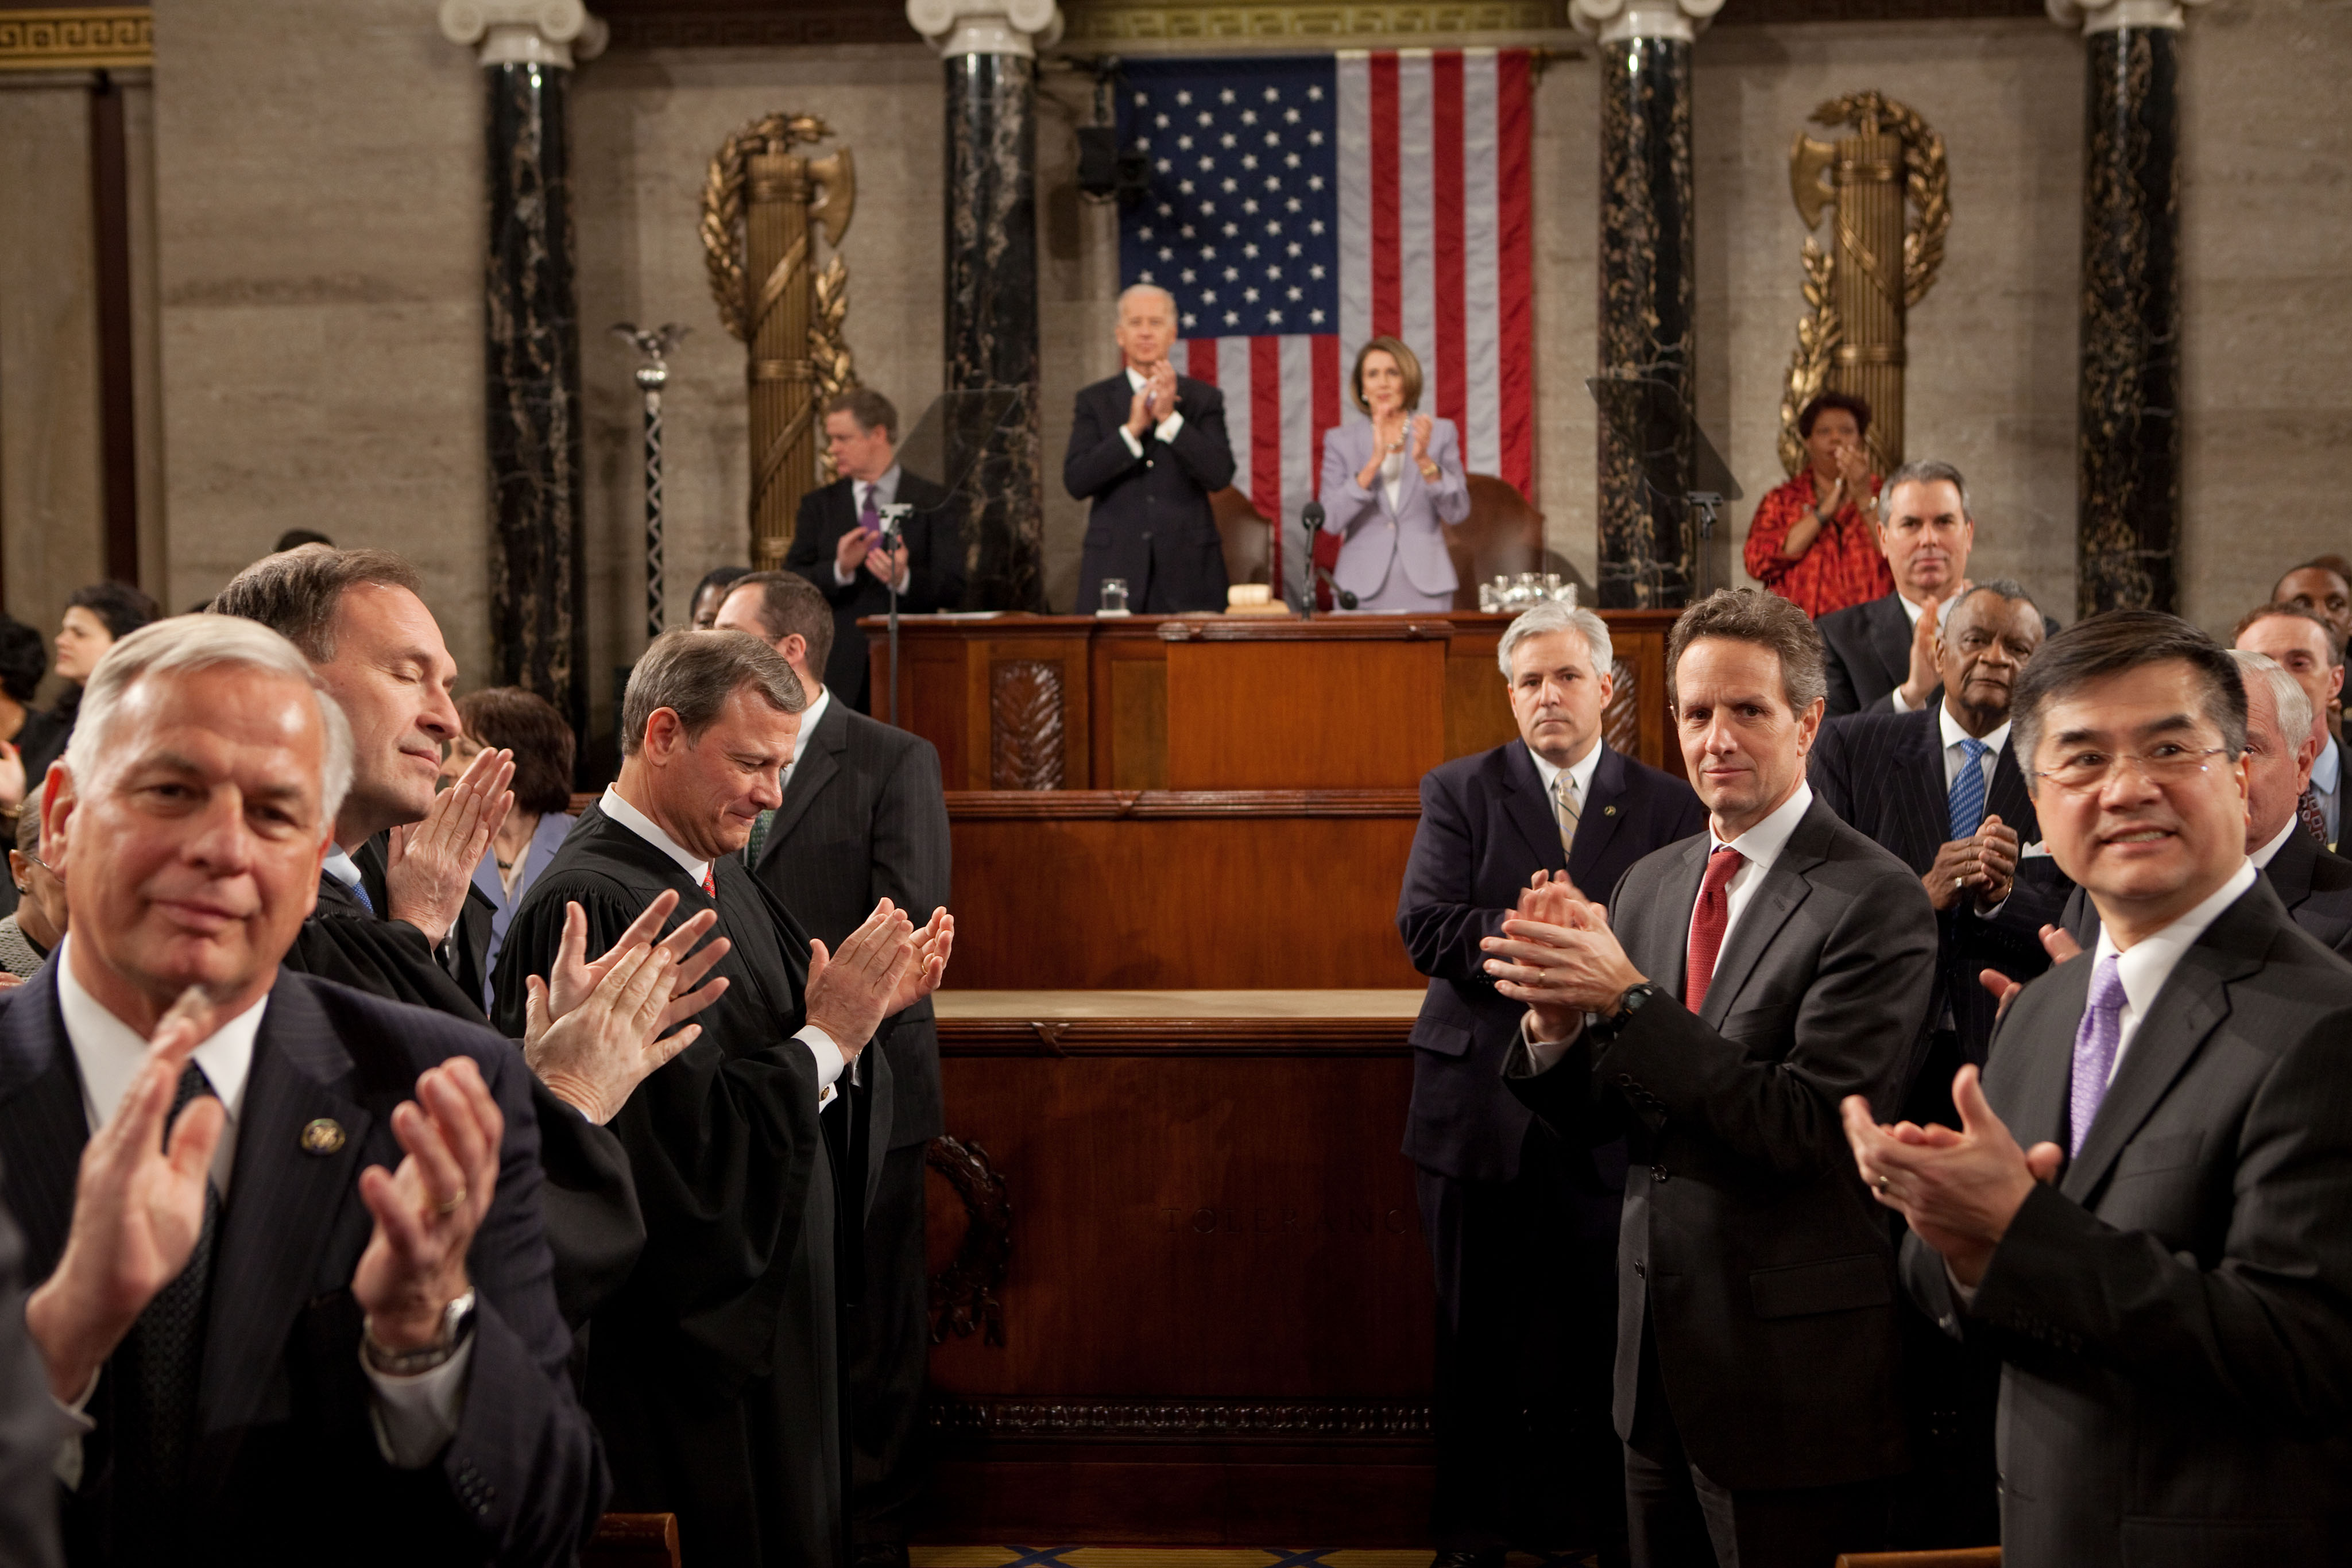 Sotu Preview >> File:Pathway through House chamber for SOTU speech.jpg - Wikimedia Commons